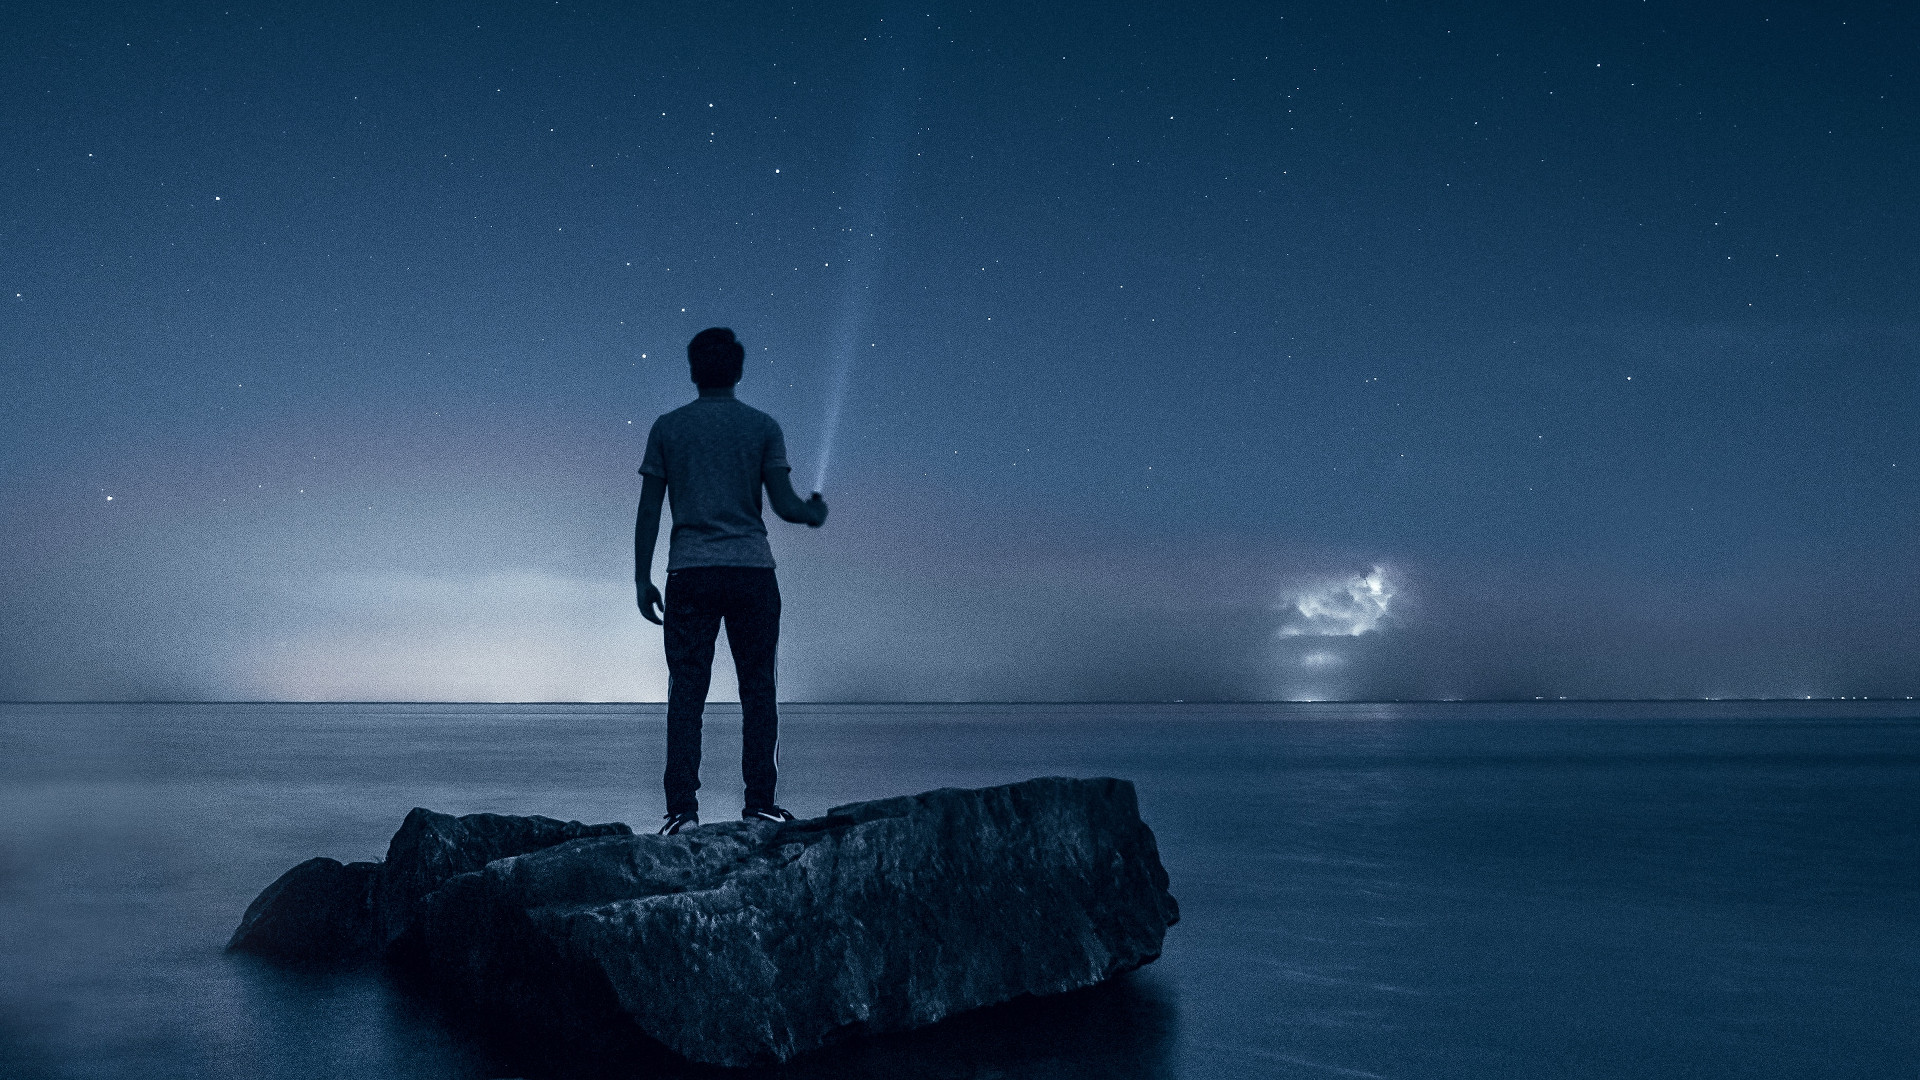 Man Standing on rock holding a flashlight